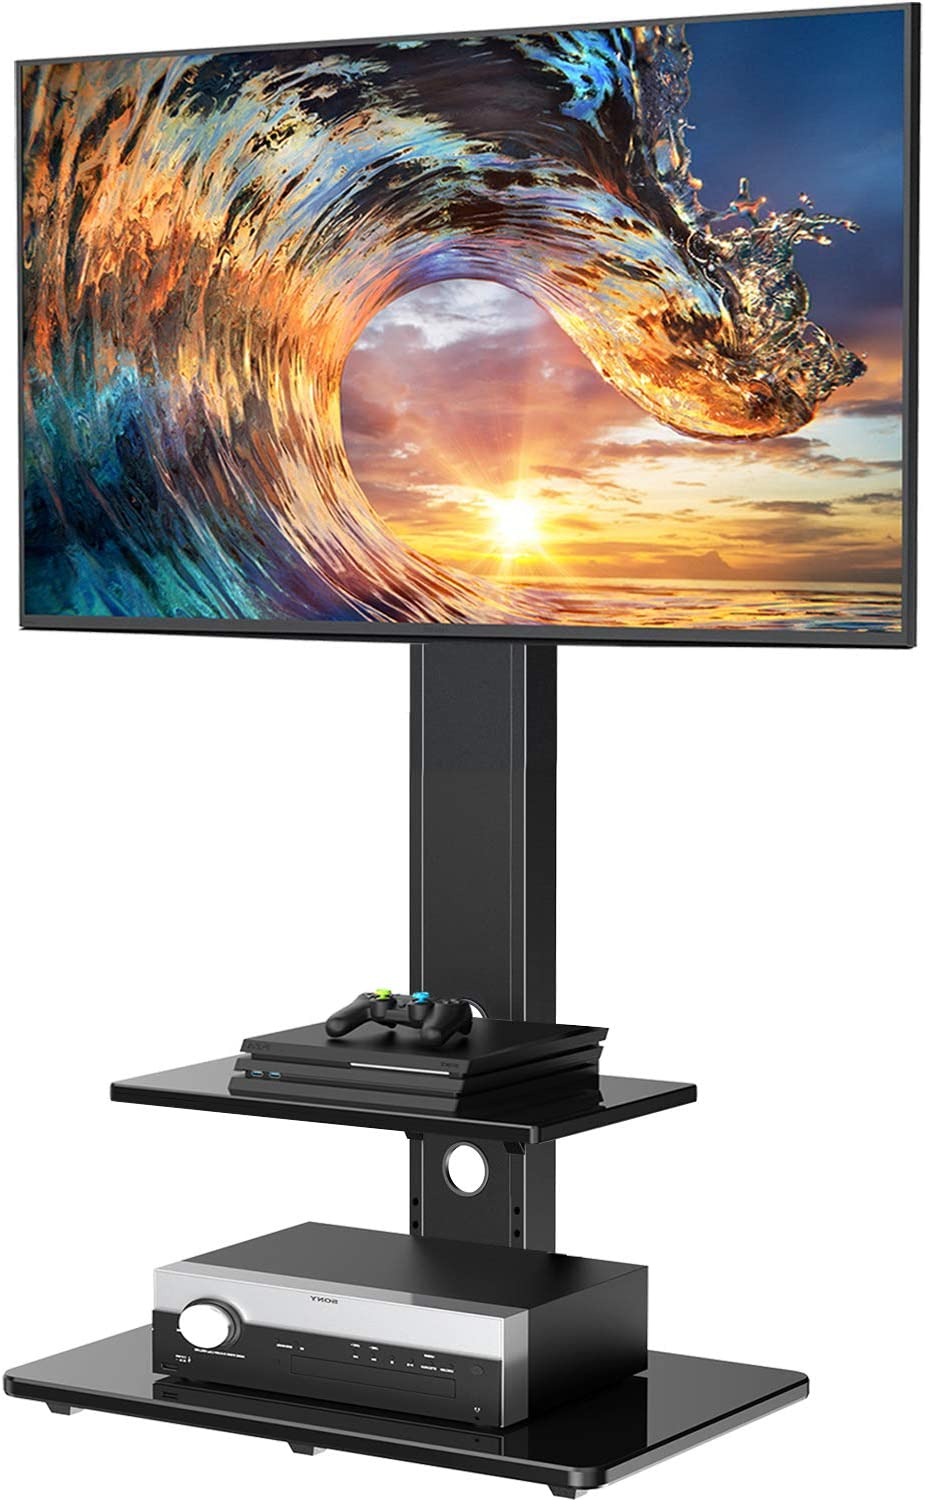 Rfiver Floor Corner 4-Shelf TV Stand Base with Swivel Mount for 32 to 55 Inch Flat Panel or Curved Screen TVs Height Adjustable Mounting Bracket Cable Management